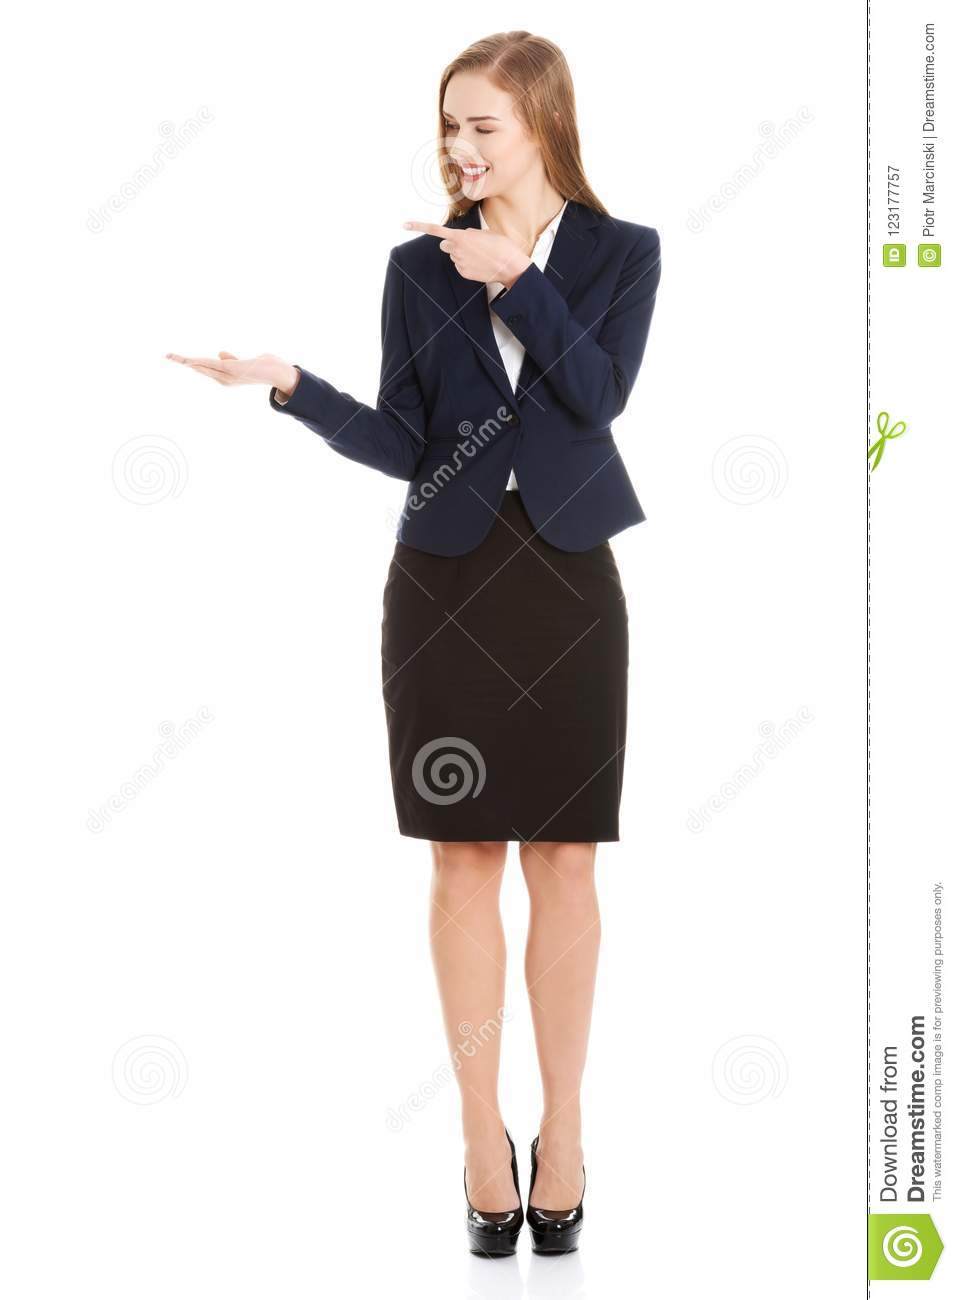 Beautiful caucasian business woman pointing on copy space on her side.